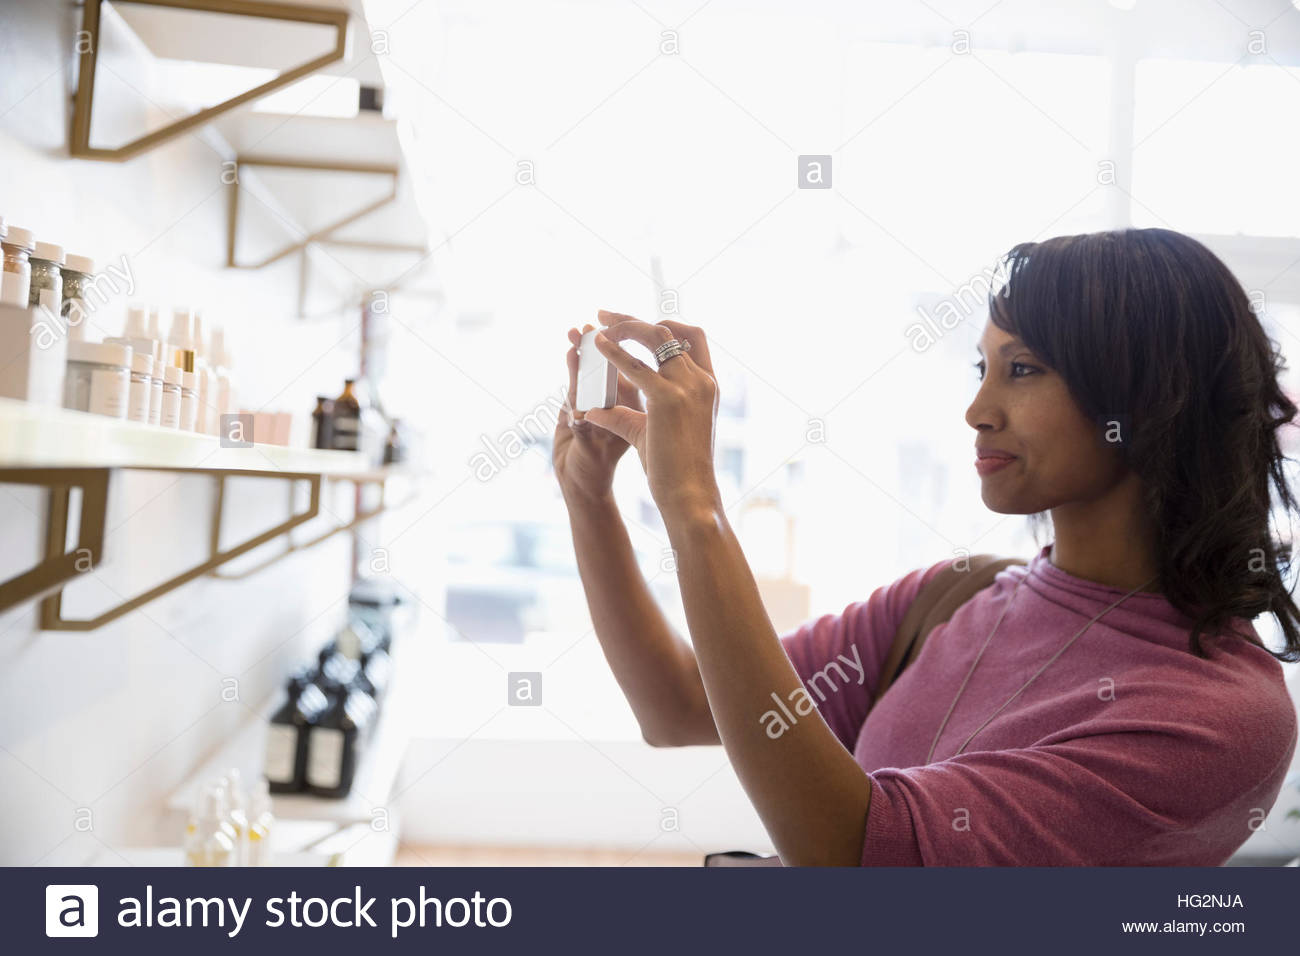 Woman with camera phone photographing merchandise on shelves in home fragrances shop - Stock Image